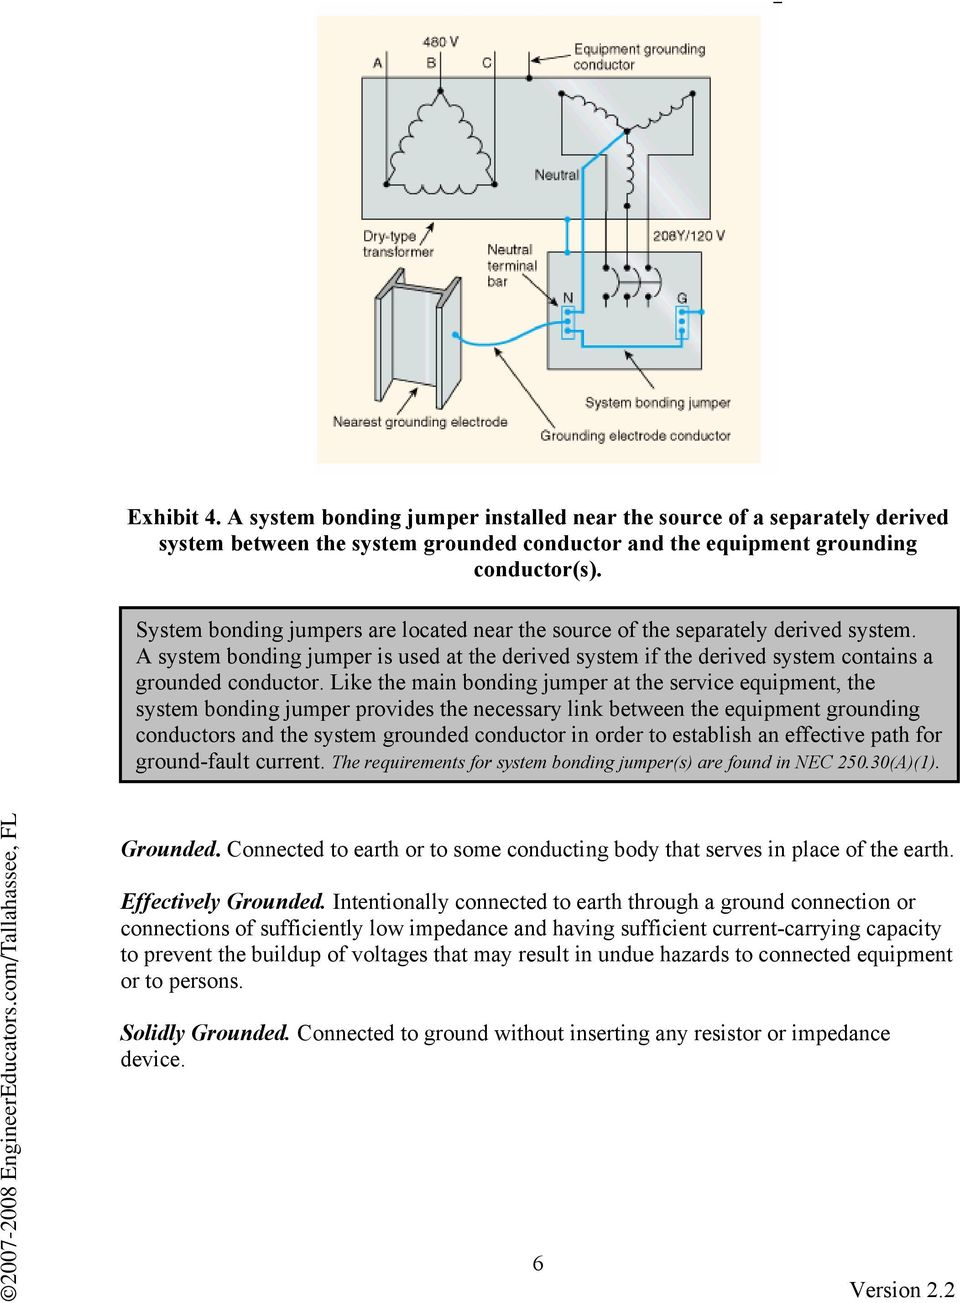 Grounding And Bonding Electrical Systems Pdf Neutrals120 Volts 240 Oh Mymultiwirediagramjpg Like The Main Jumper At Service Equipment System Provides